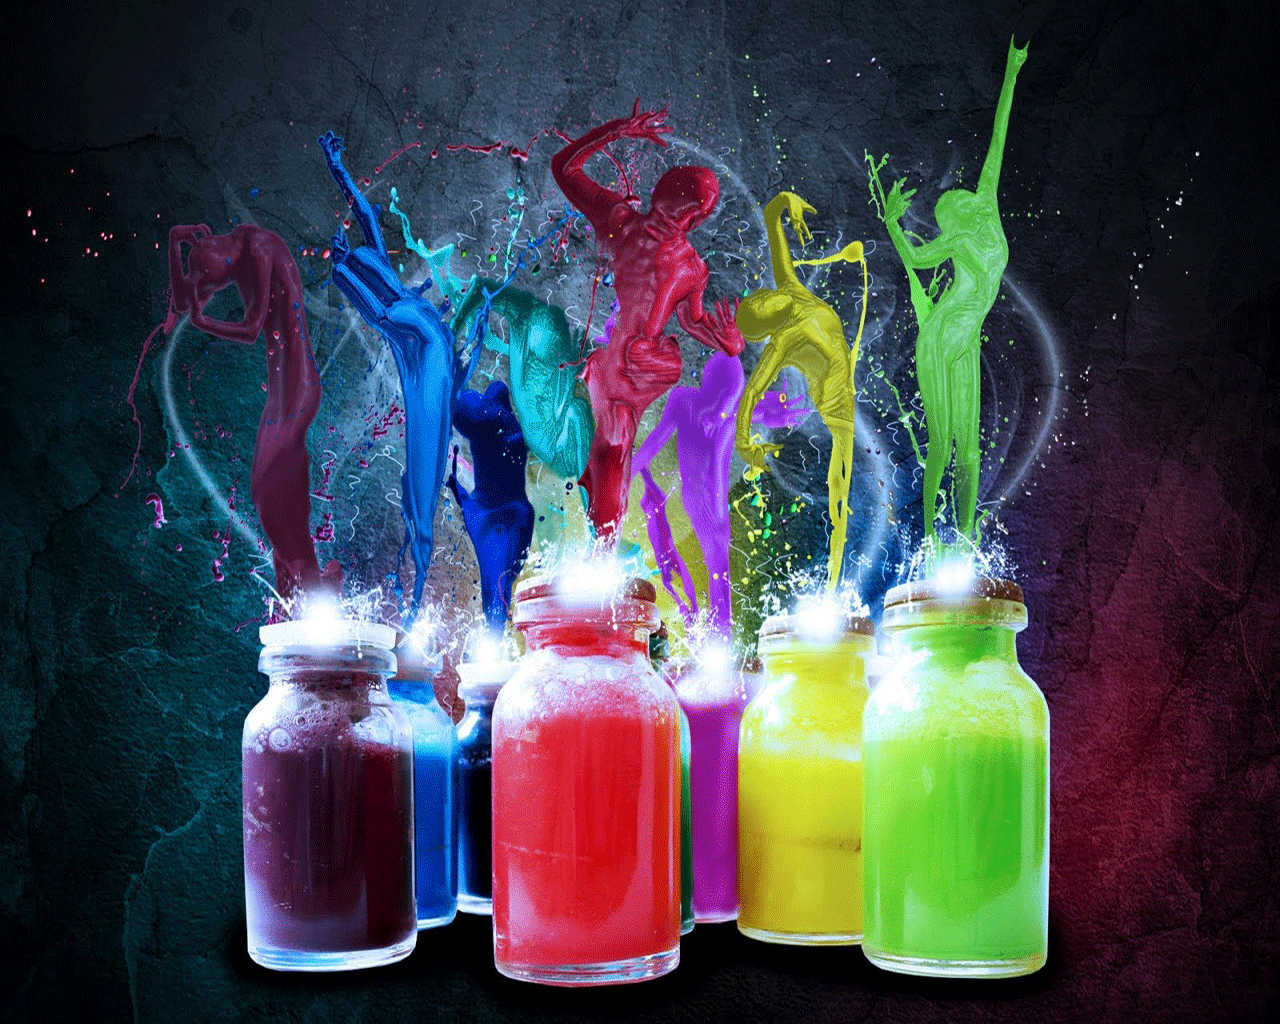 Elegant Colorful Bottles Wallpaper